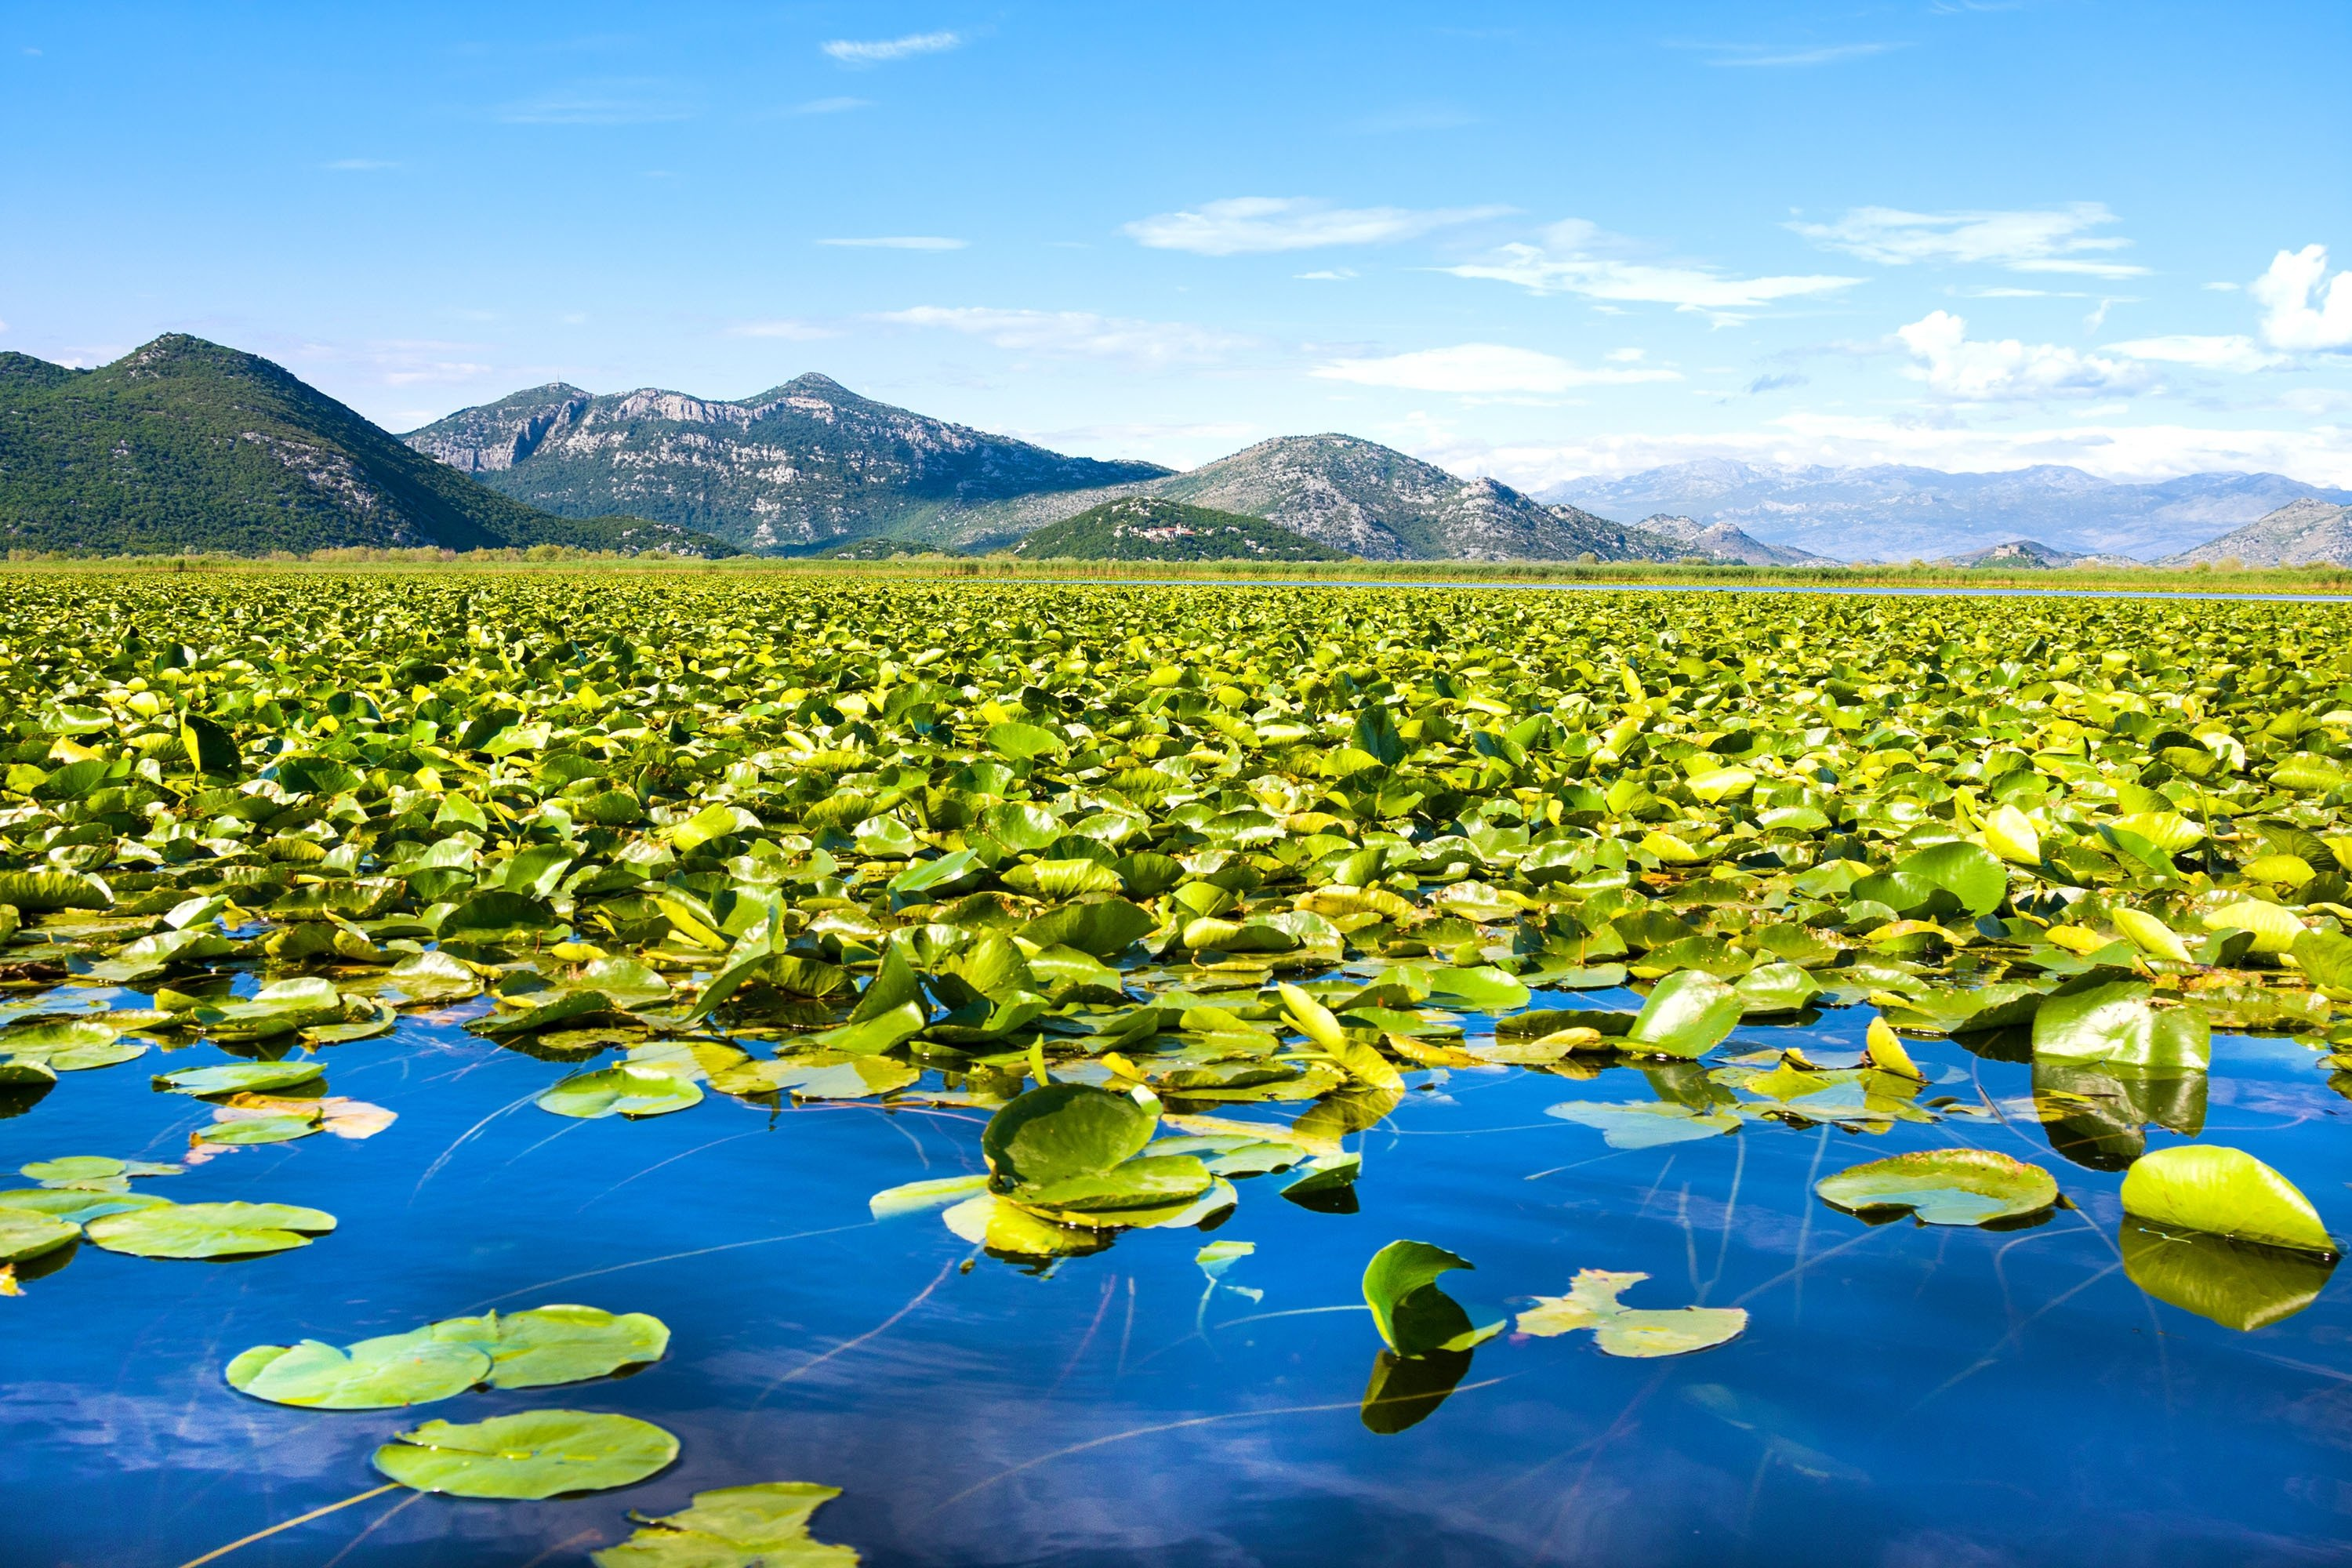 With mountains in the background, greenery floats on the waters of Lake Skadar, Montenegro. (Shutterstock Photo)